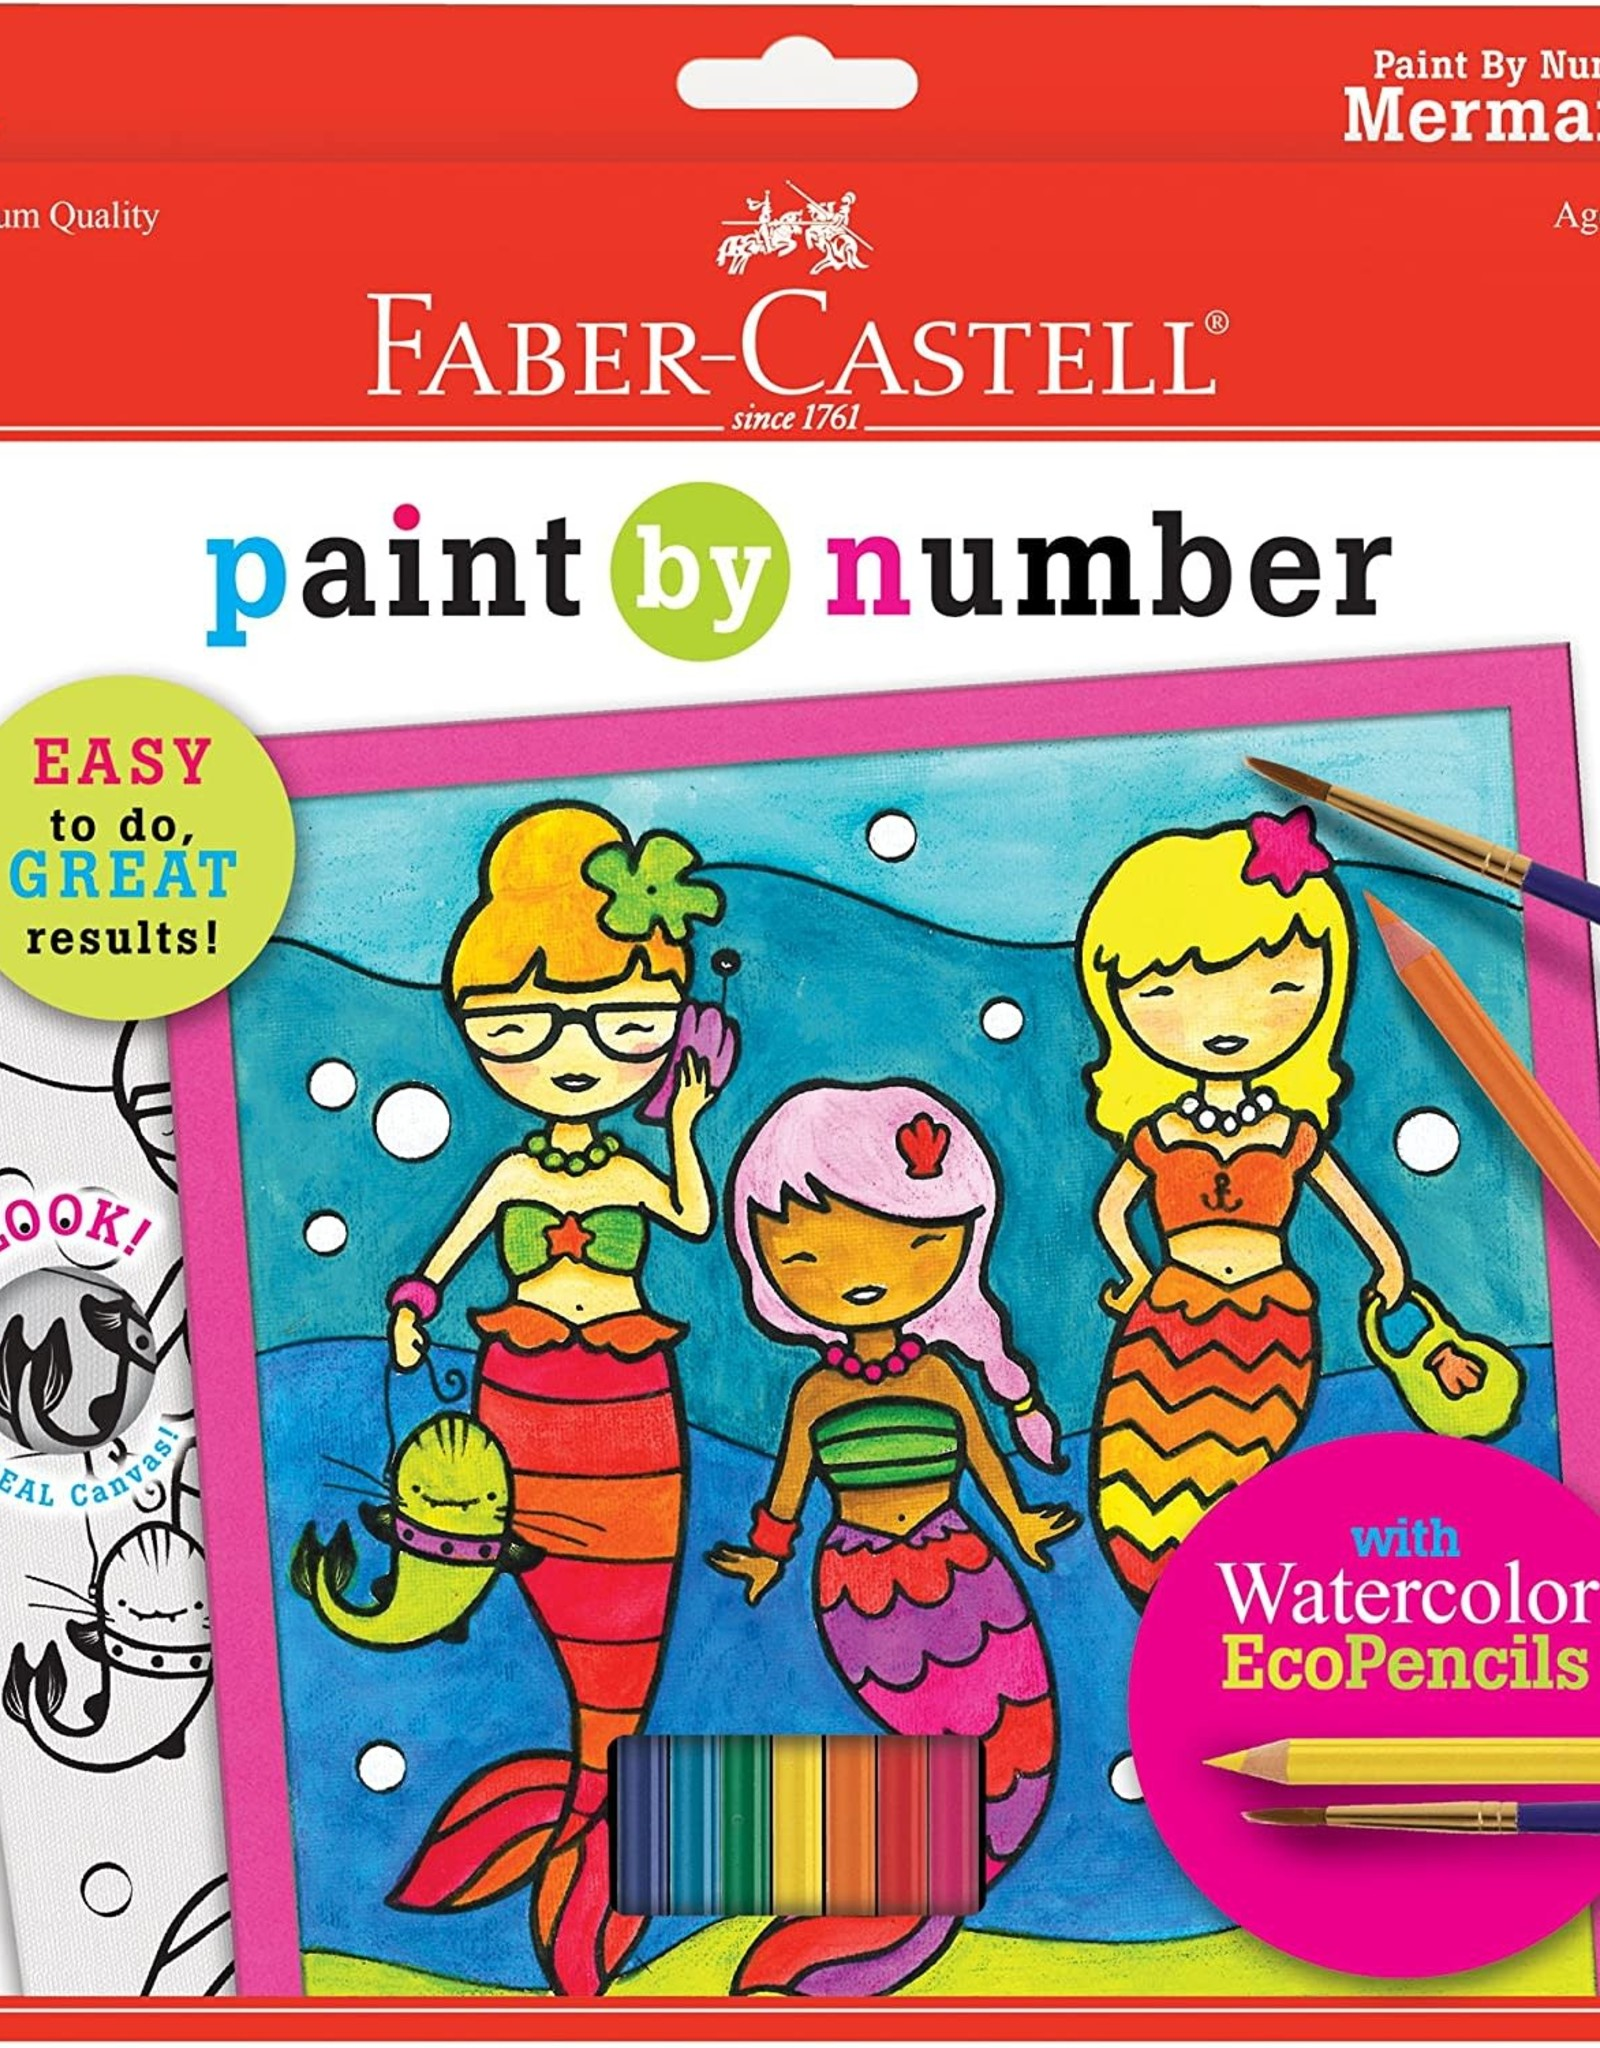 Faber-Castell Paint By Number Mermaids